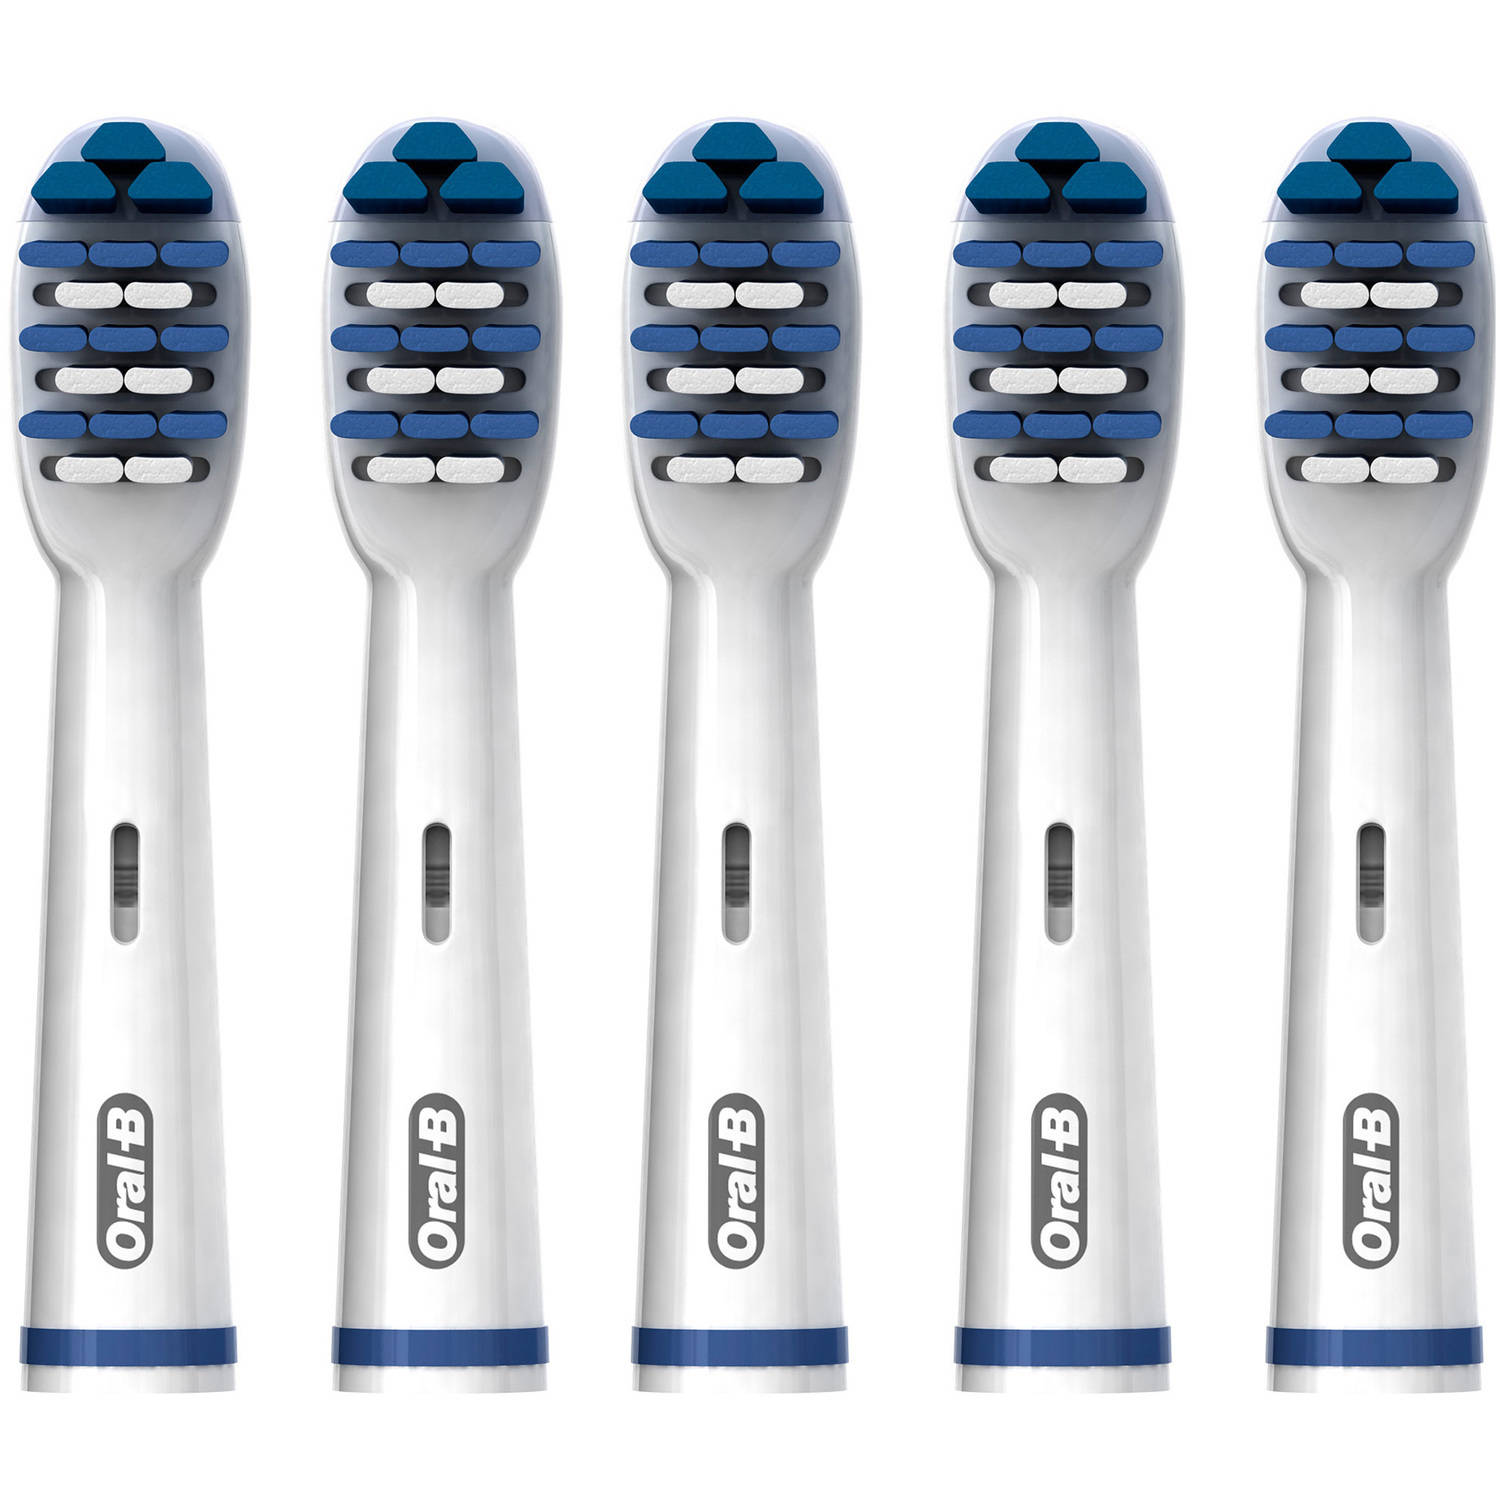 Oral-B Deep Sweep Replacement Electric Toothbrush Heads, 5 count